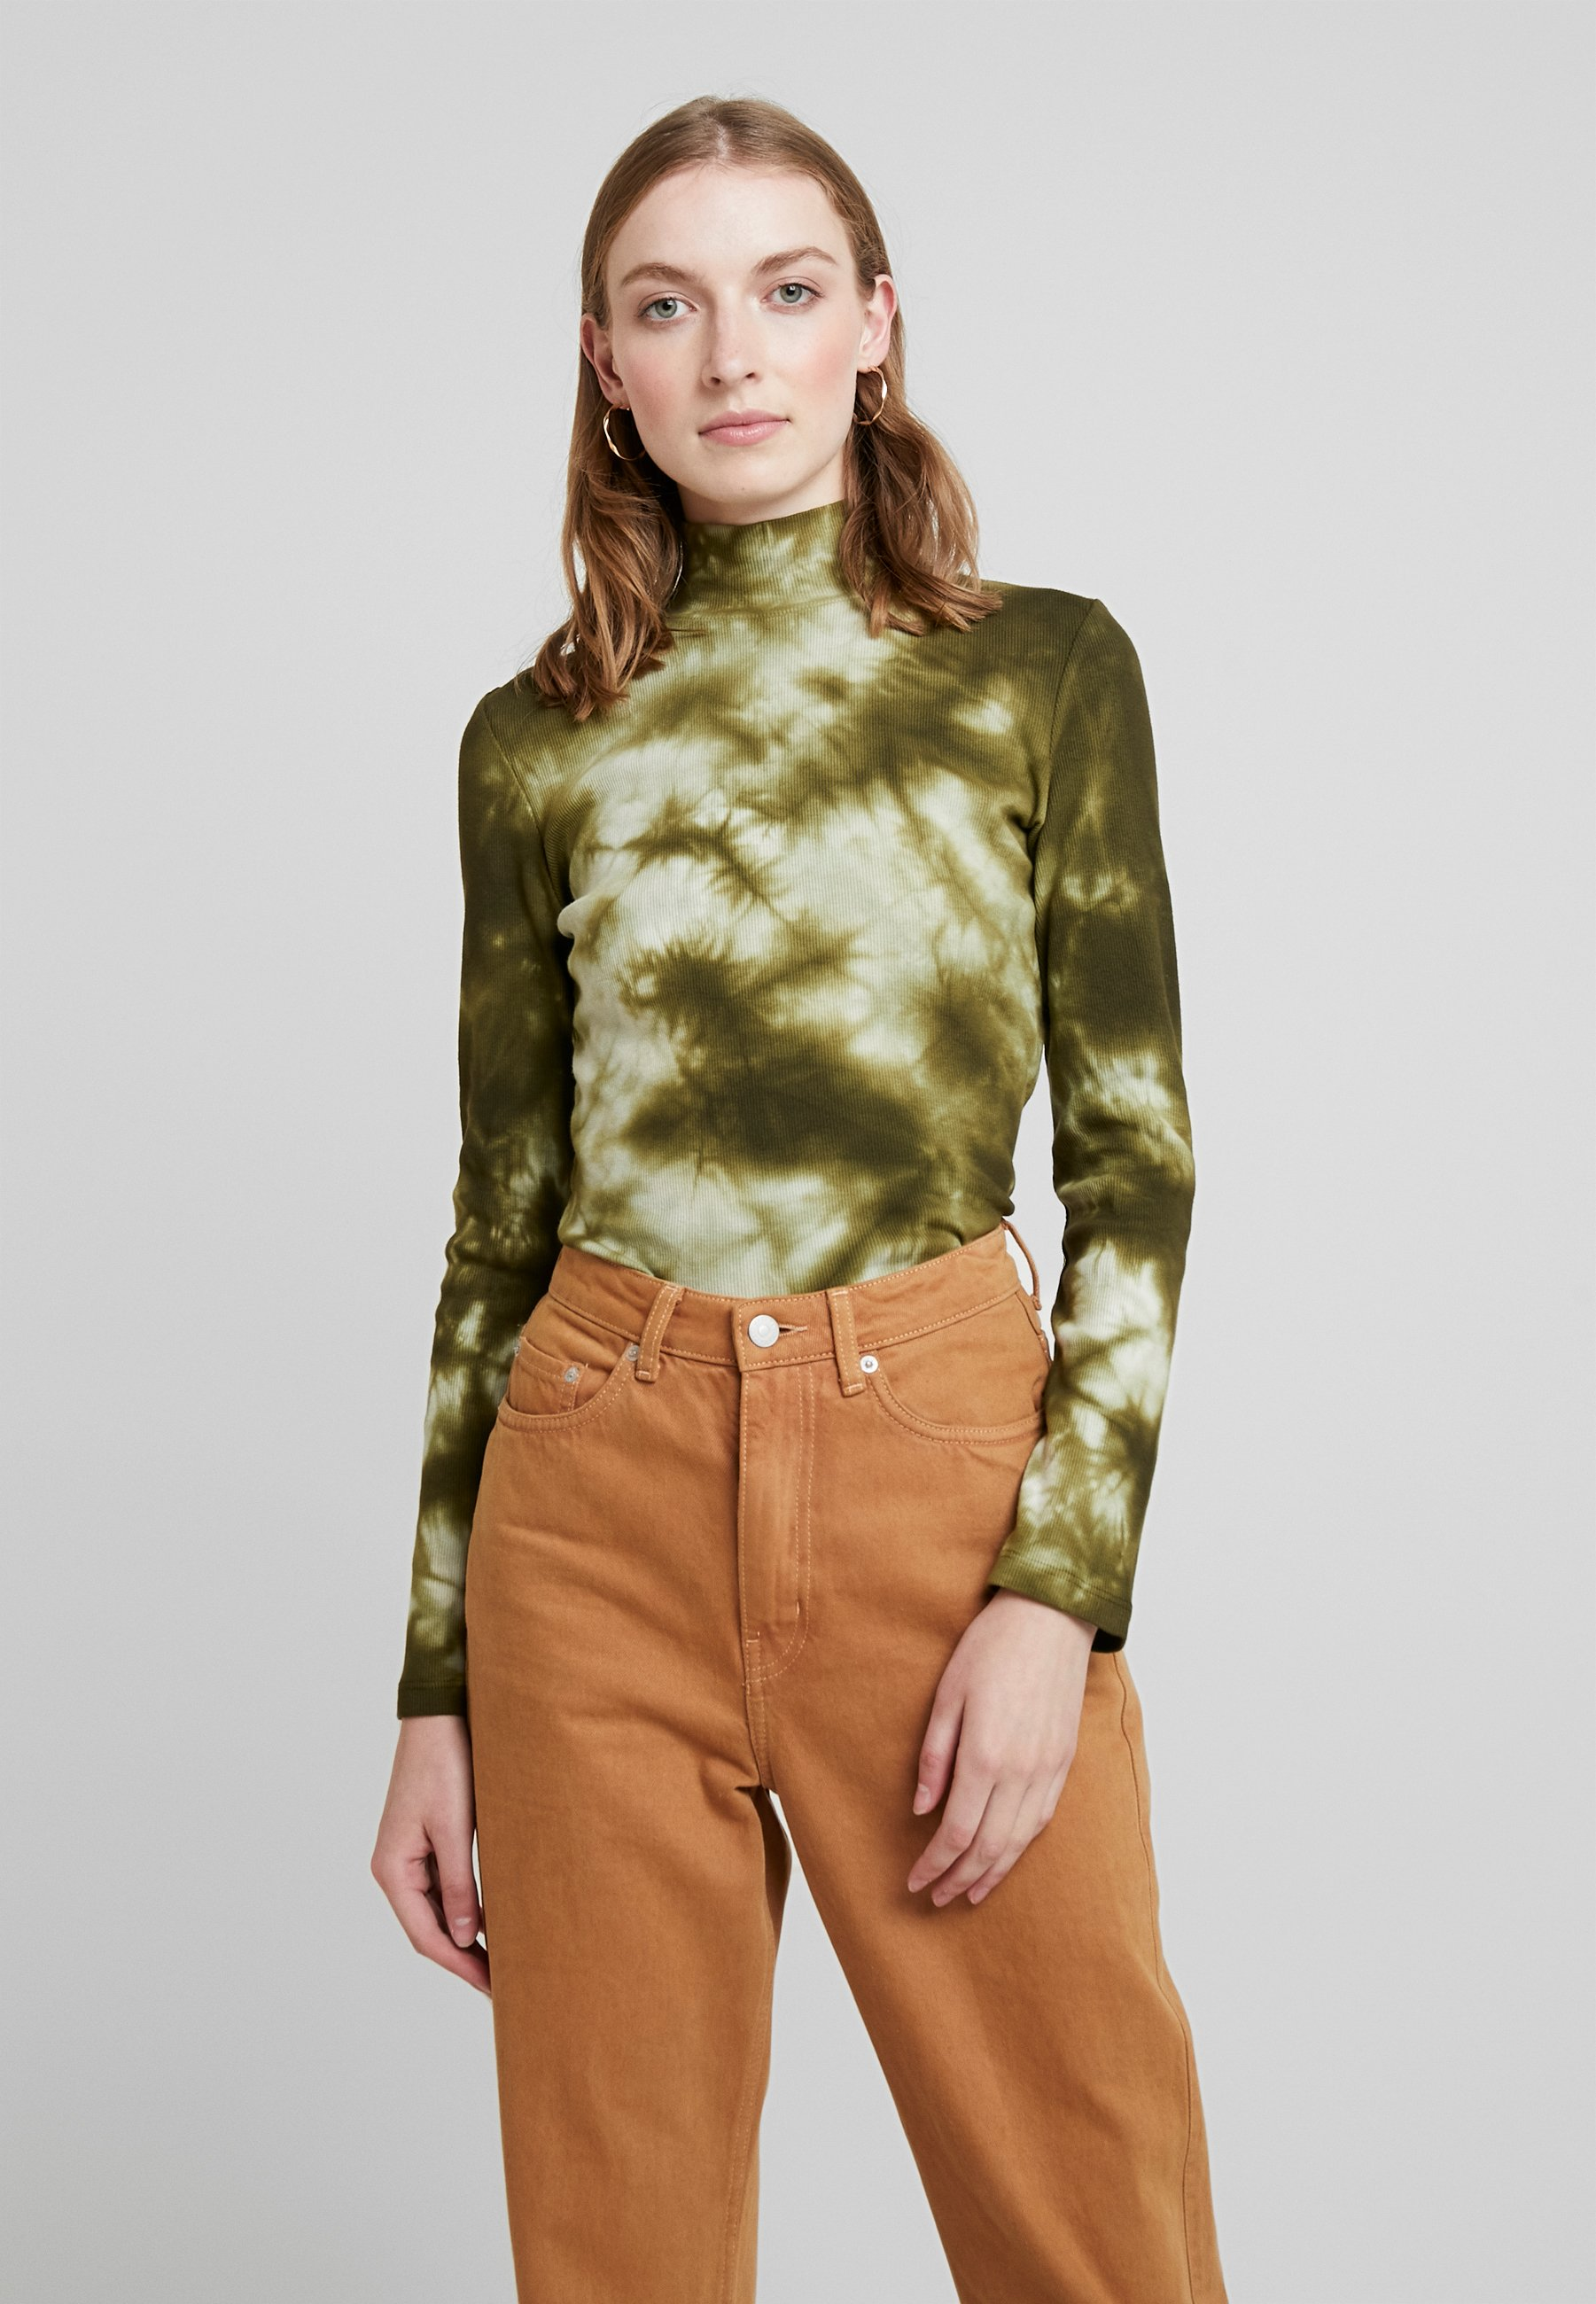 À One shirt LonguesMilitary Story More T Manches Olive ChdxtQrBos